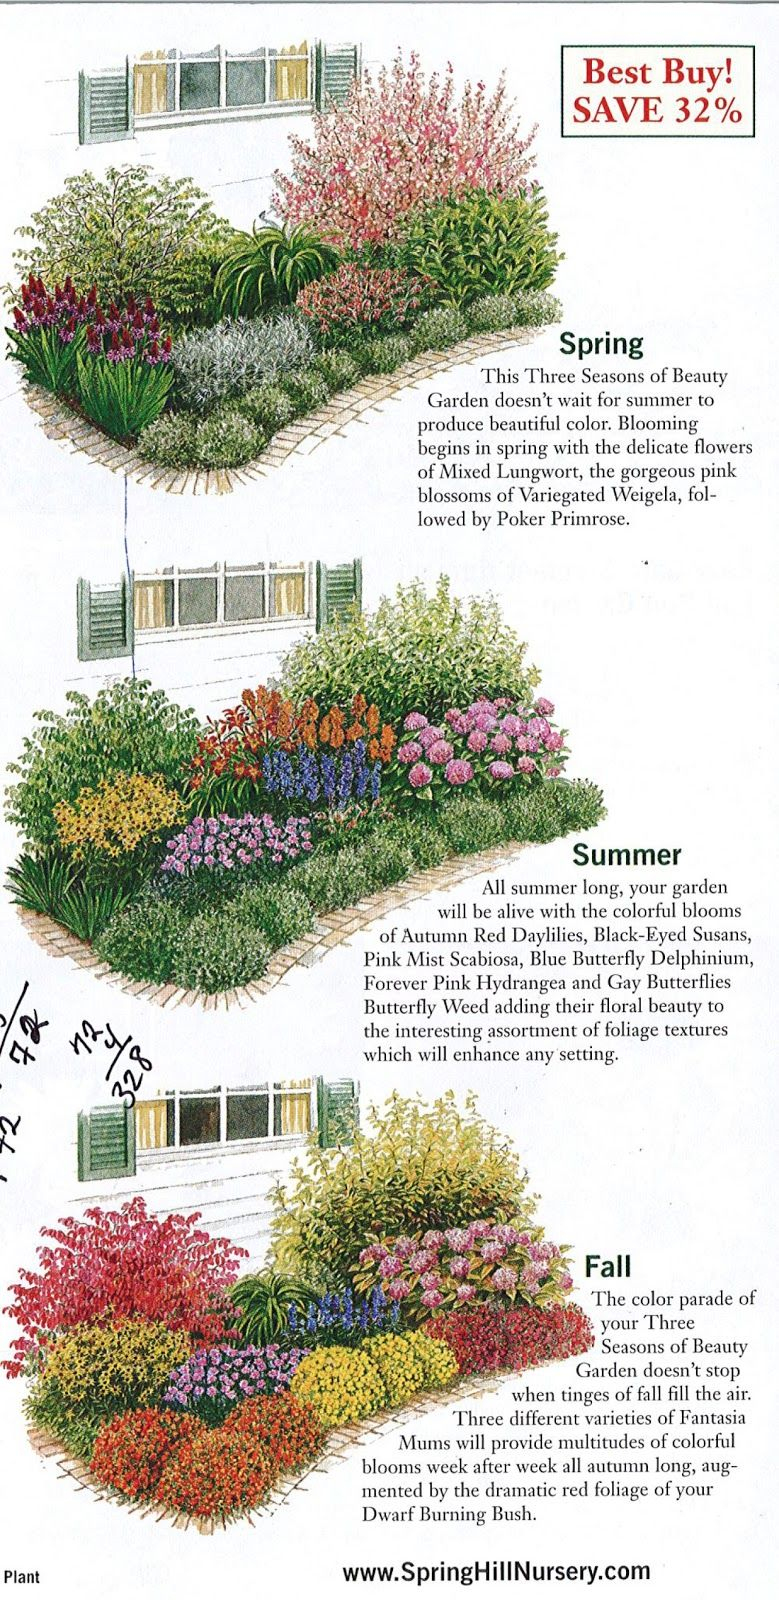 Diva 1 2 3 Beau Photos Gardening Garden Plan A Week Week 2 Three Seasons Of Beauty